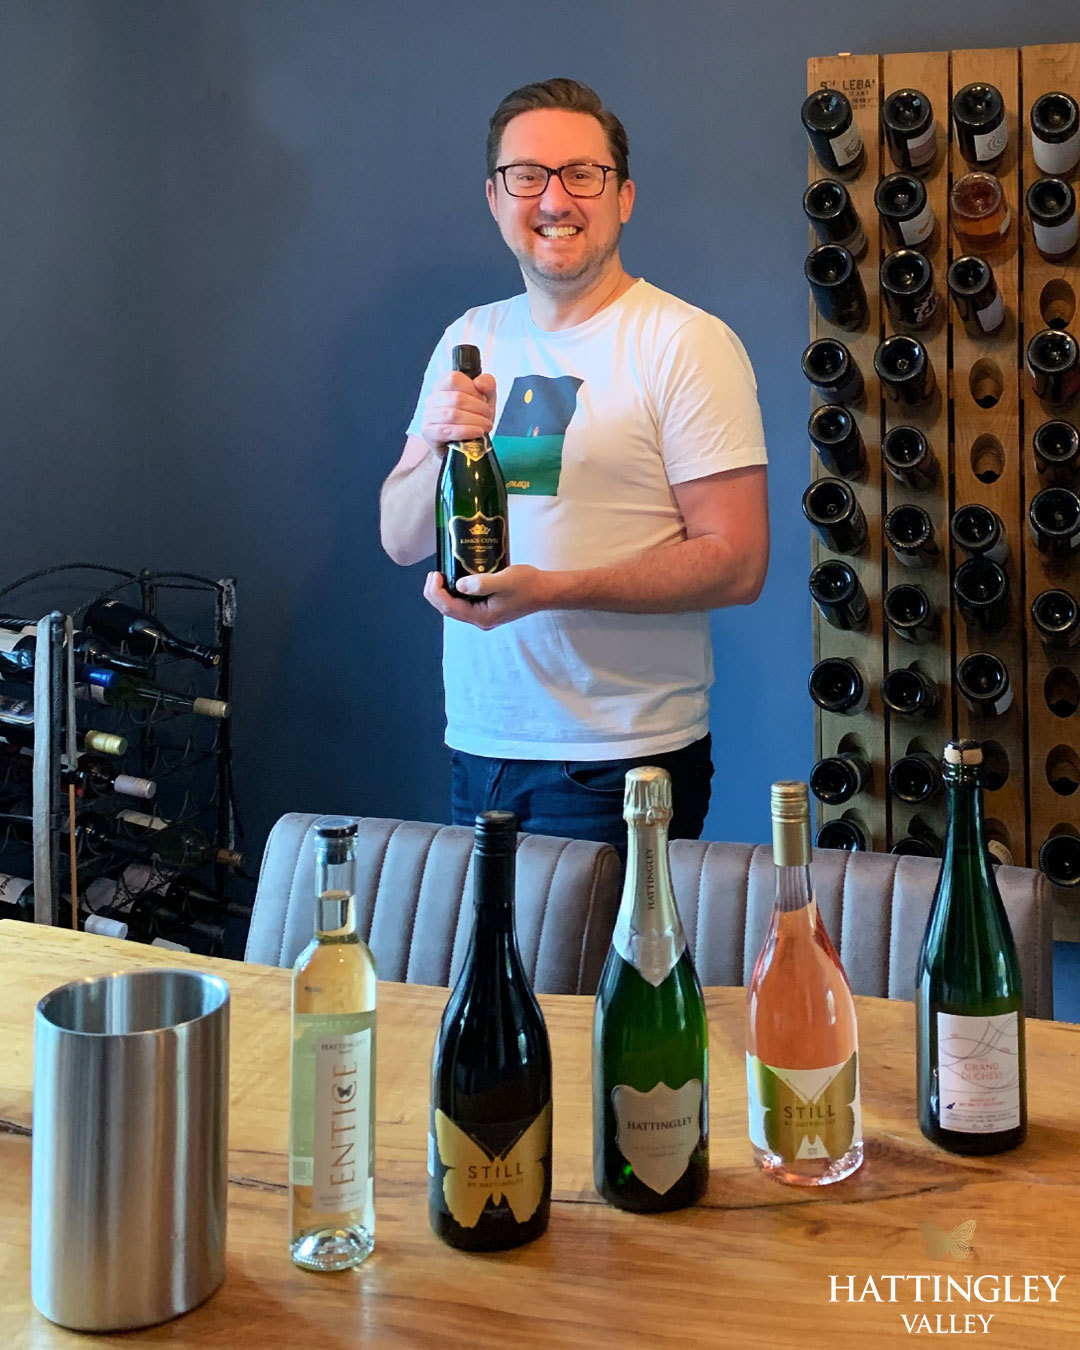 Hattingley Valley Wine for a year competition winner